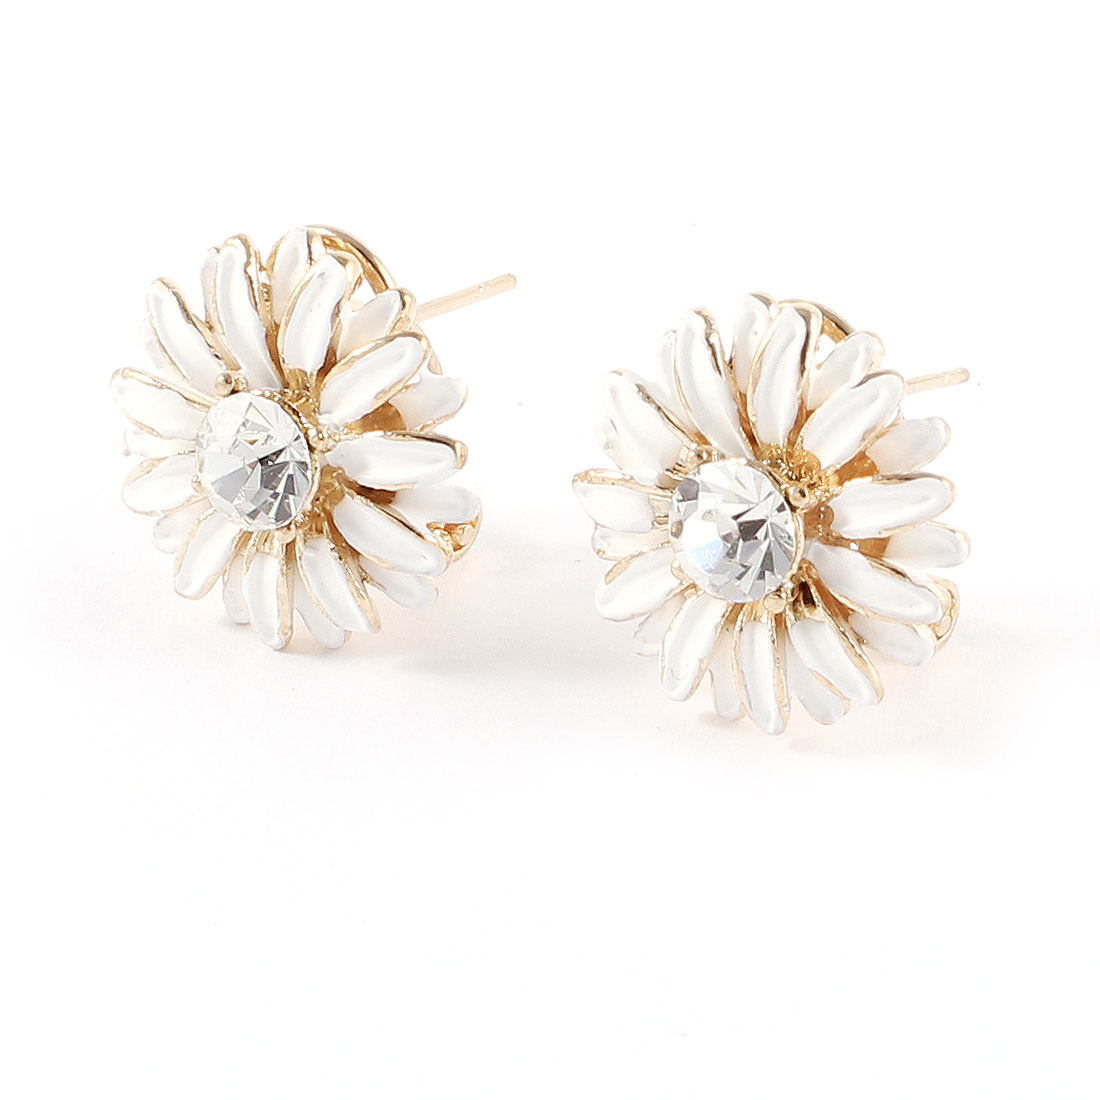 Rhinestone Inlaid White Floral Metal Mini French Clip Earrings Stud Pair